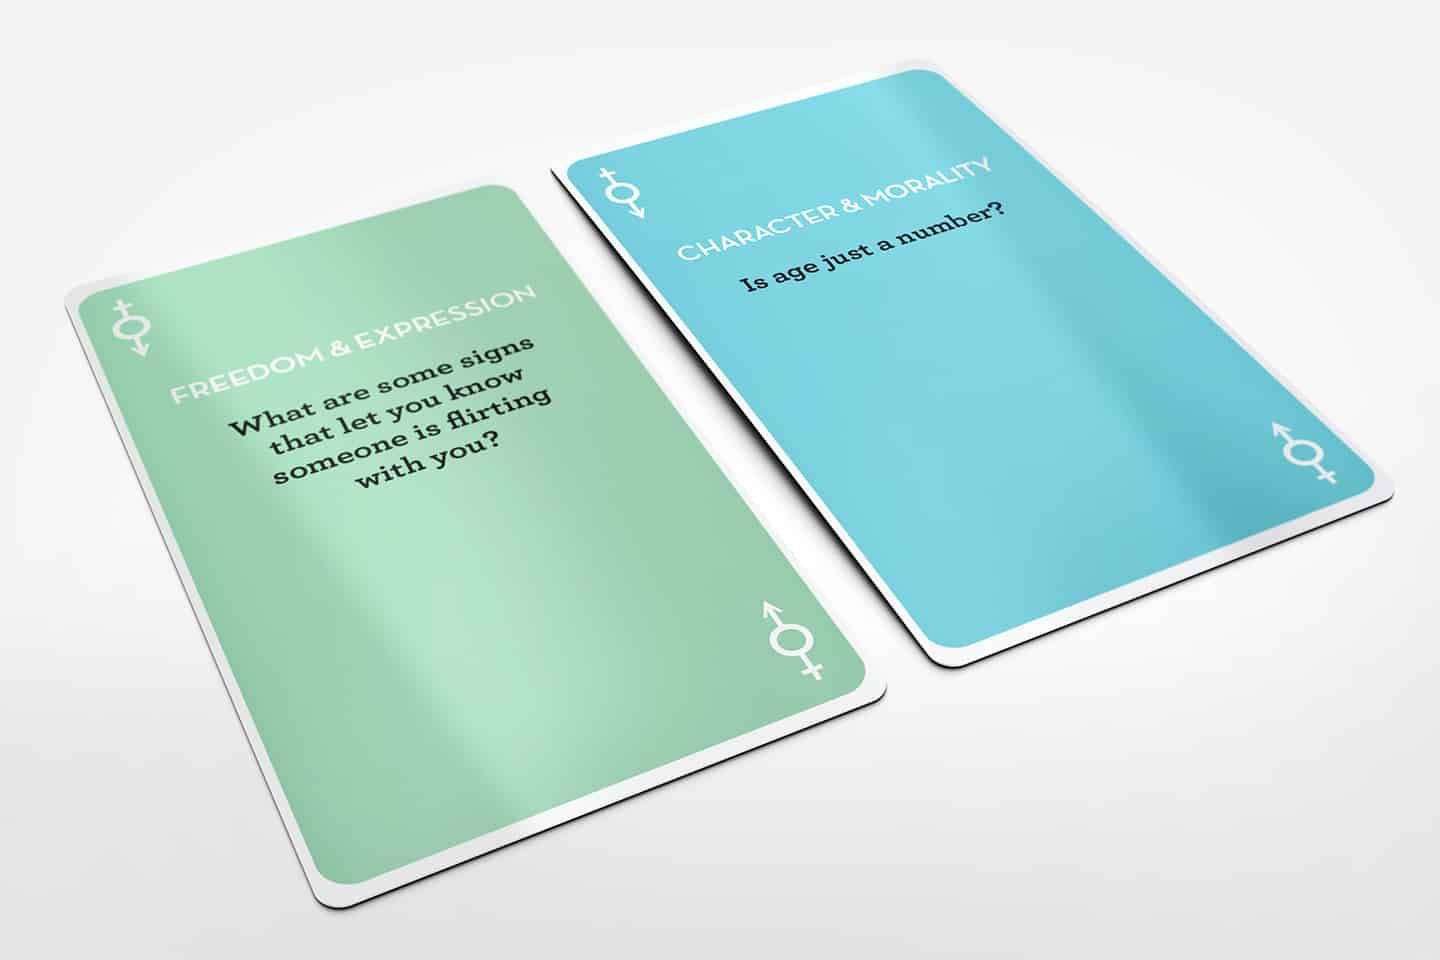 Two Example Cards 2